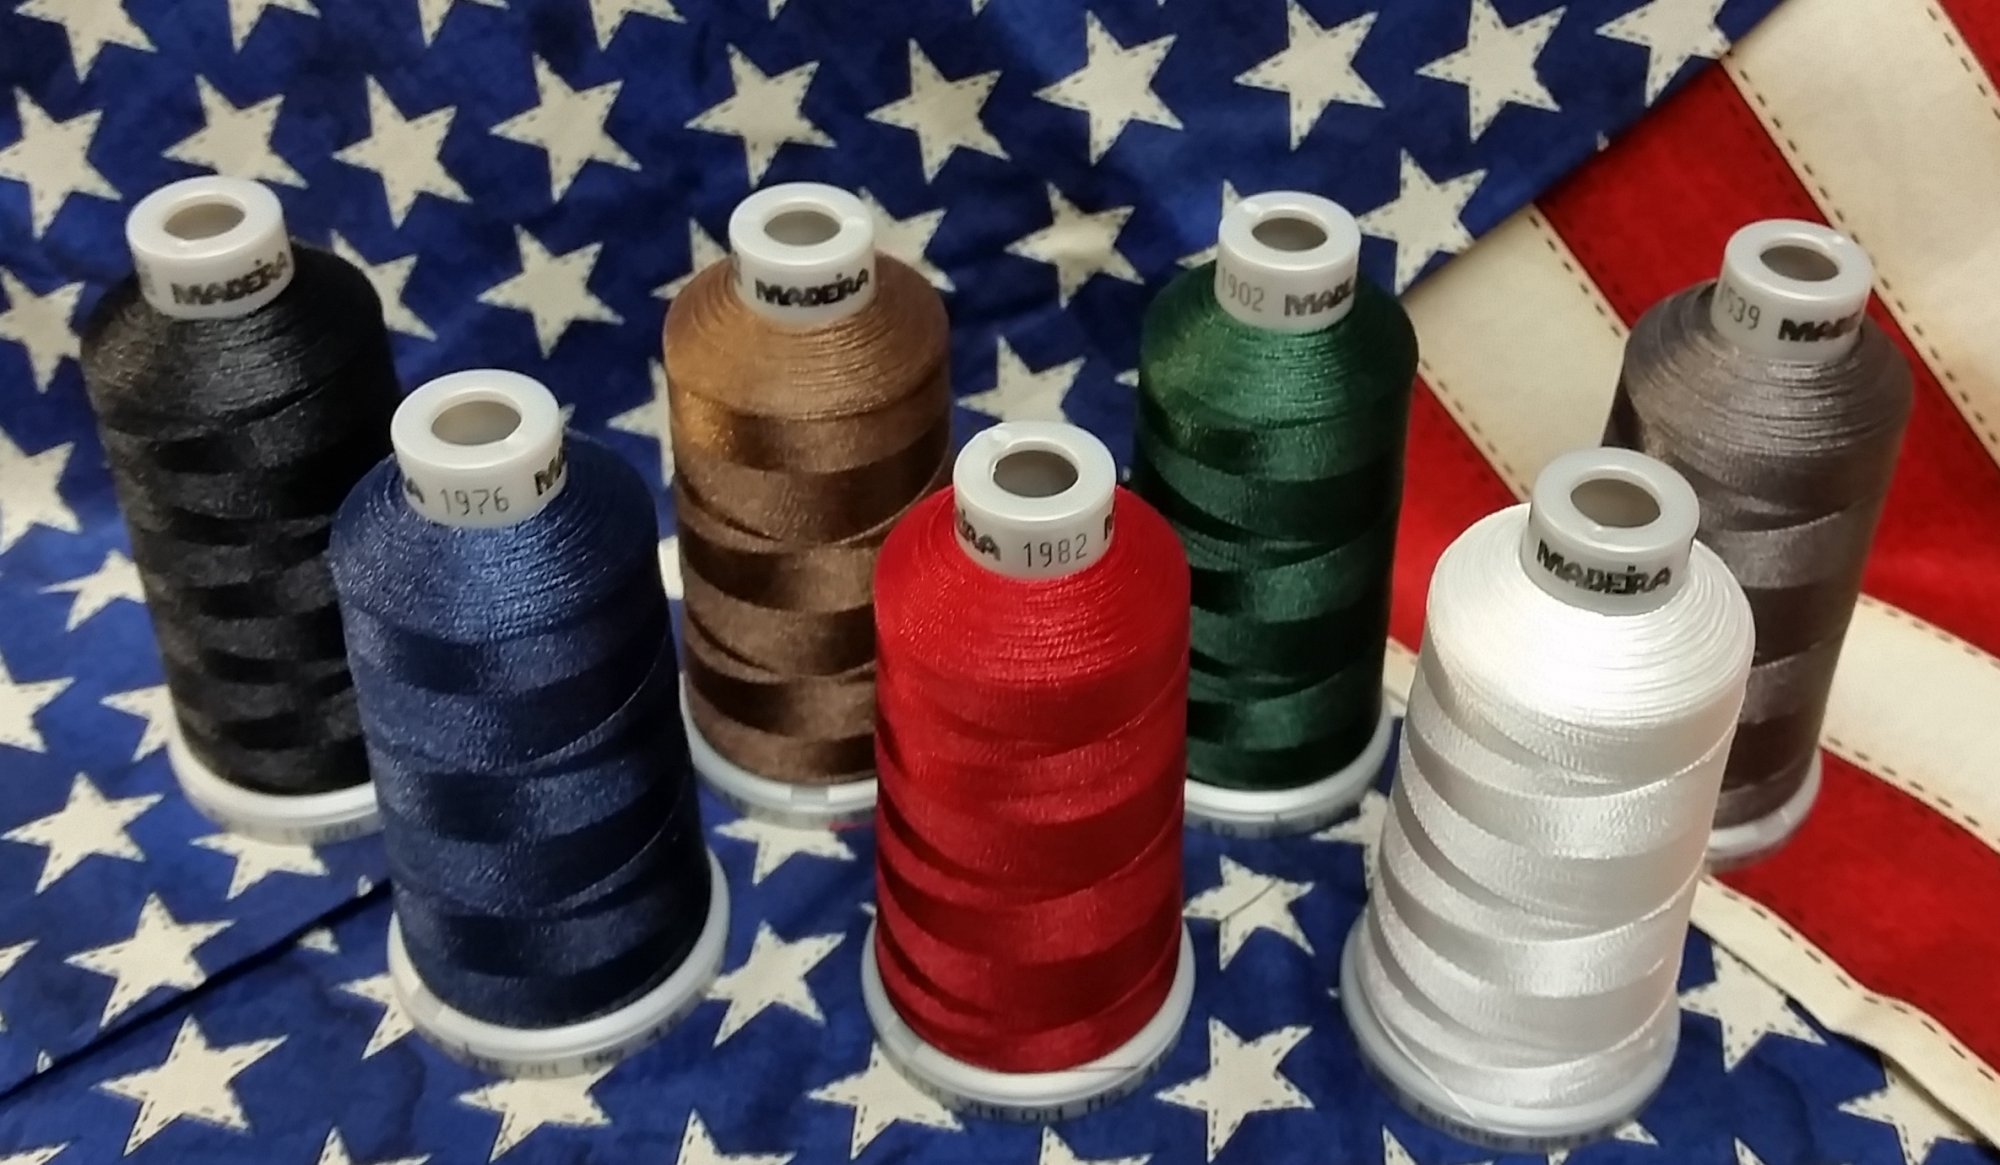 American Honor Applique Thread Kit